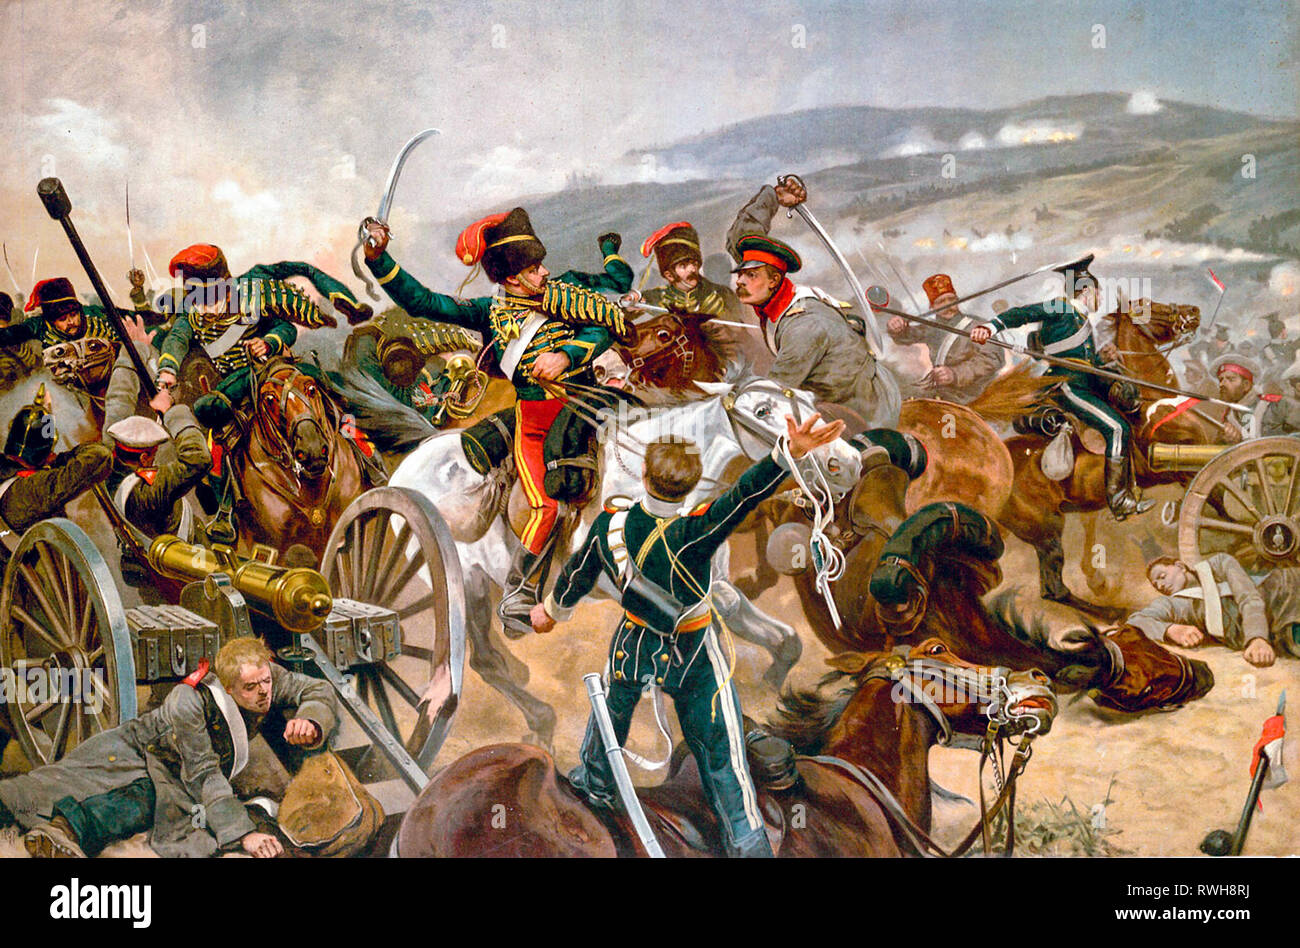 The Relief of the Light Brigade, Richard Caton Woodville, Junior, Battle of Balaclava painting, 1897 - Stock Image